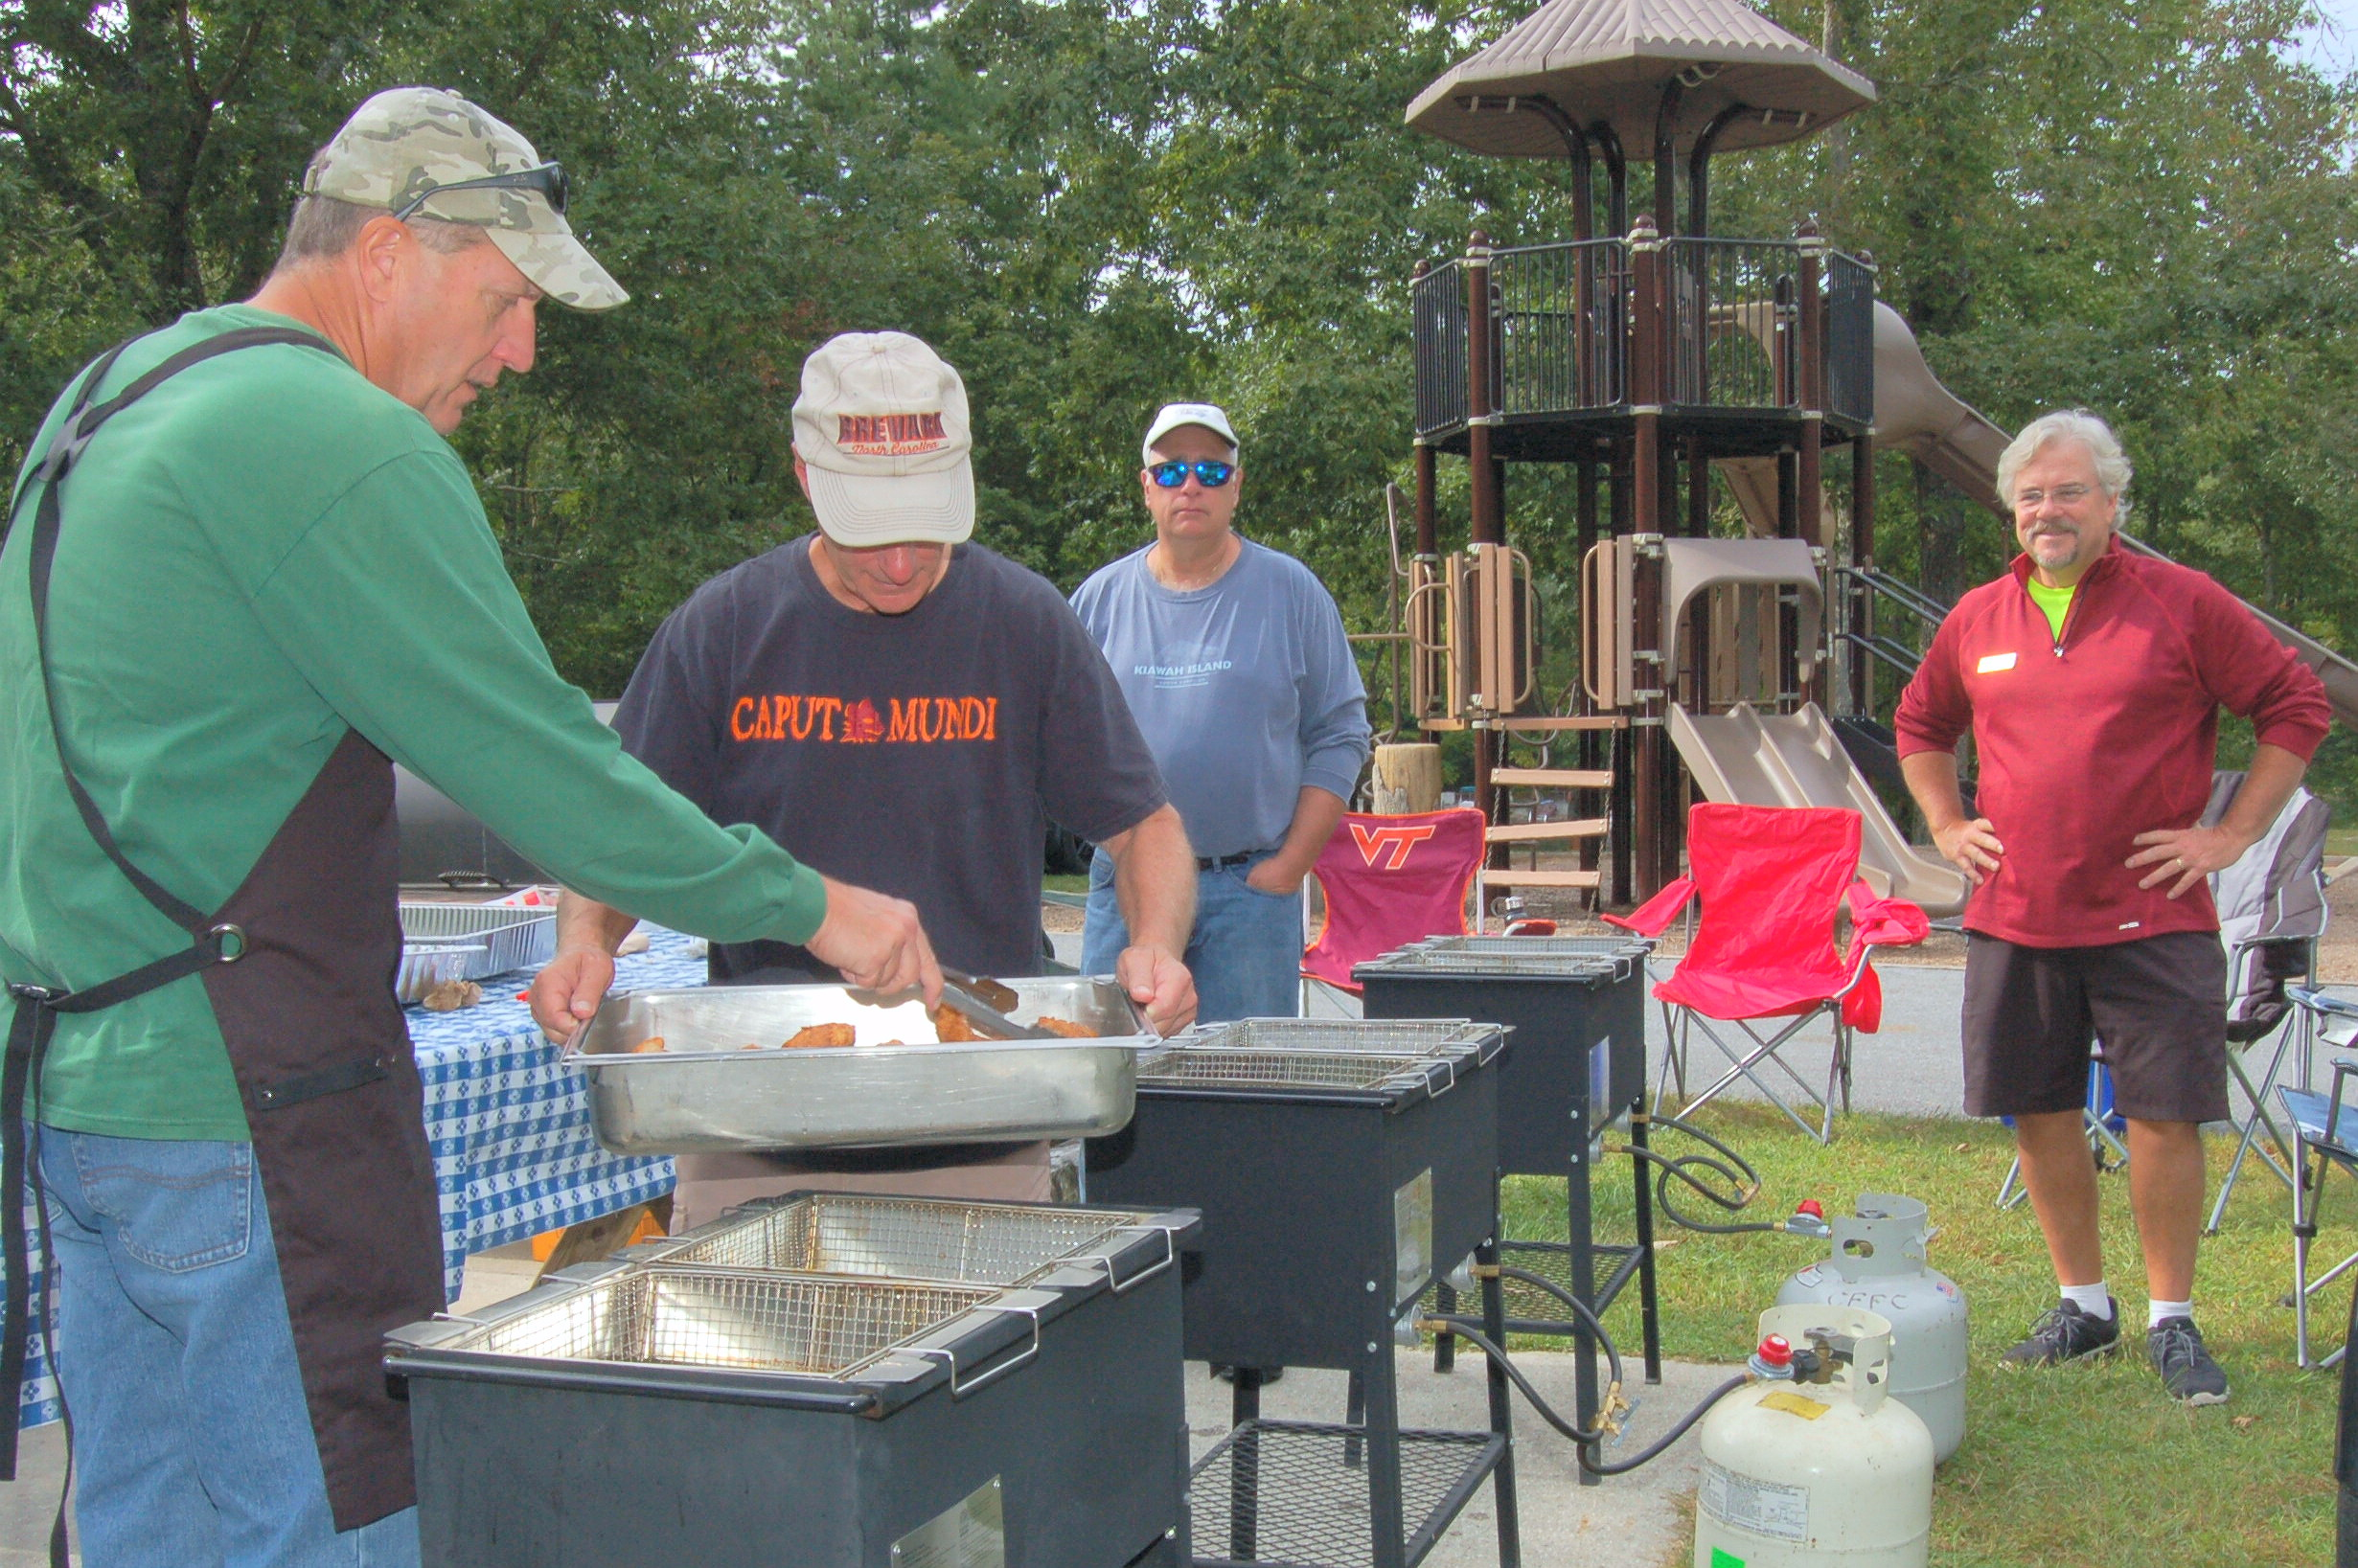 Club President Jim Bailey watches as Joe Mihelcic, T.J. Kopt and Mike Huckabey deep fry up some 200 catfish filets